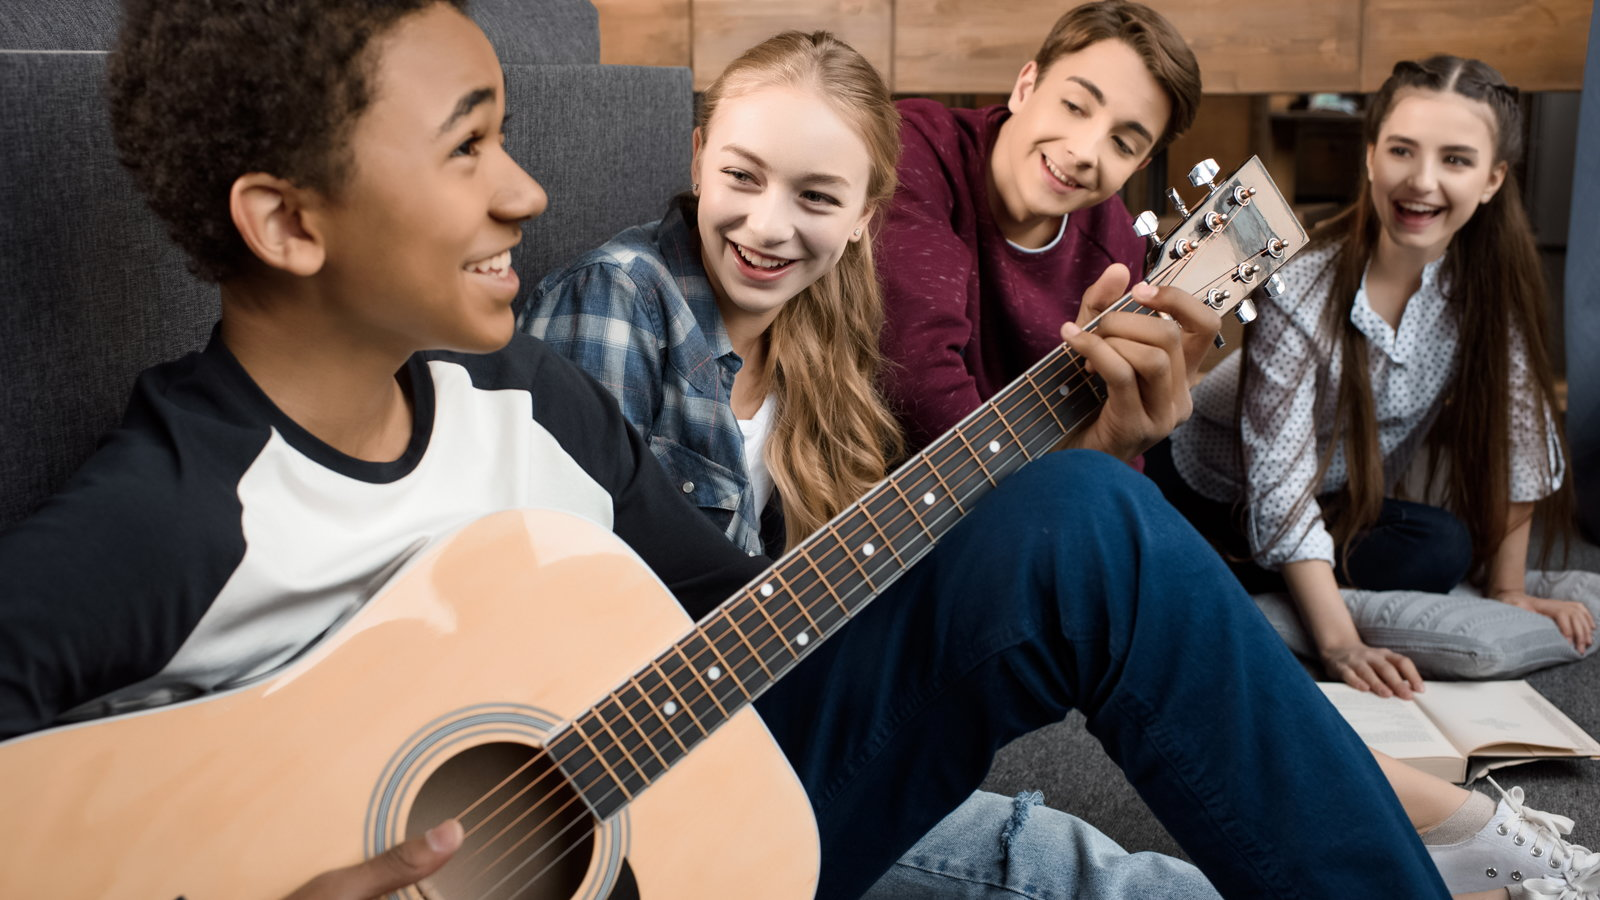 teen boy playing guitar with friends